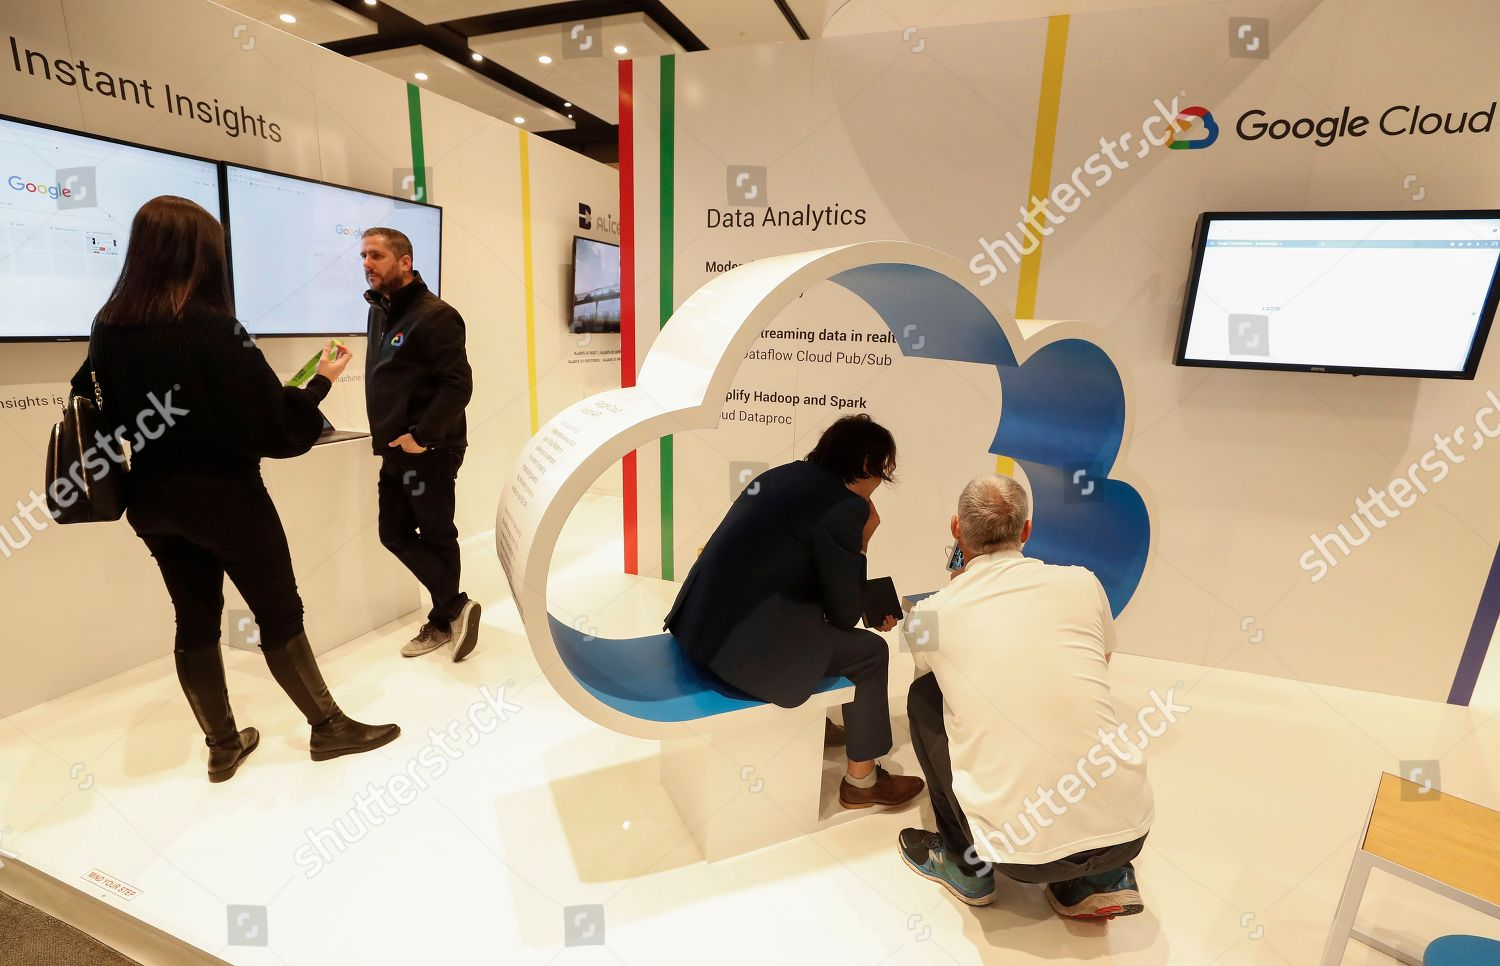 Expo Stands Cape Town : Delegates interact google stand during artificial intelligence